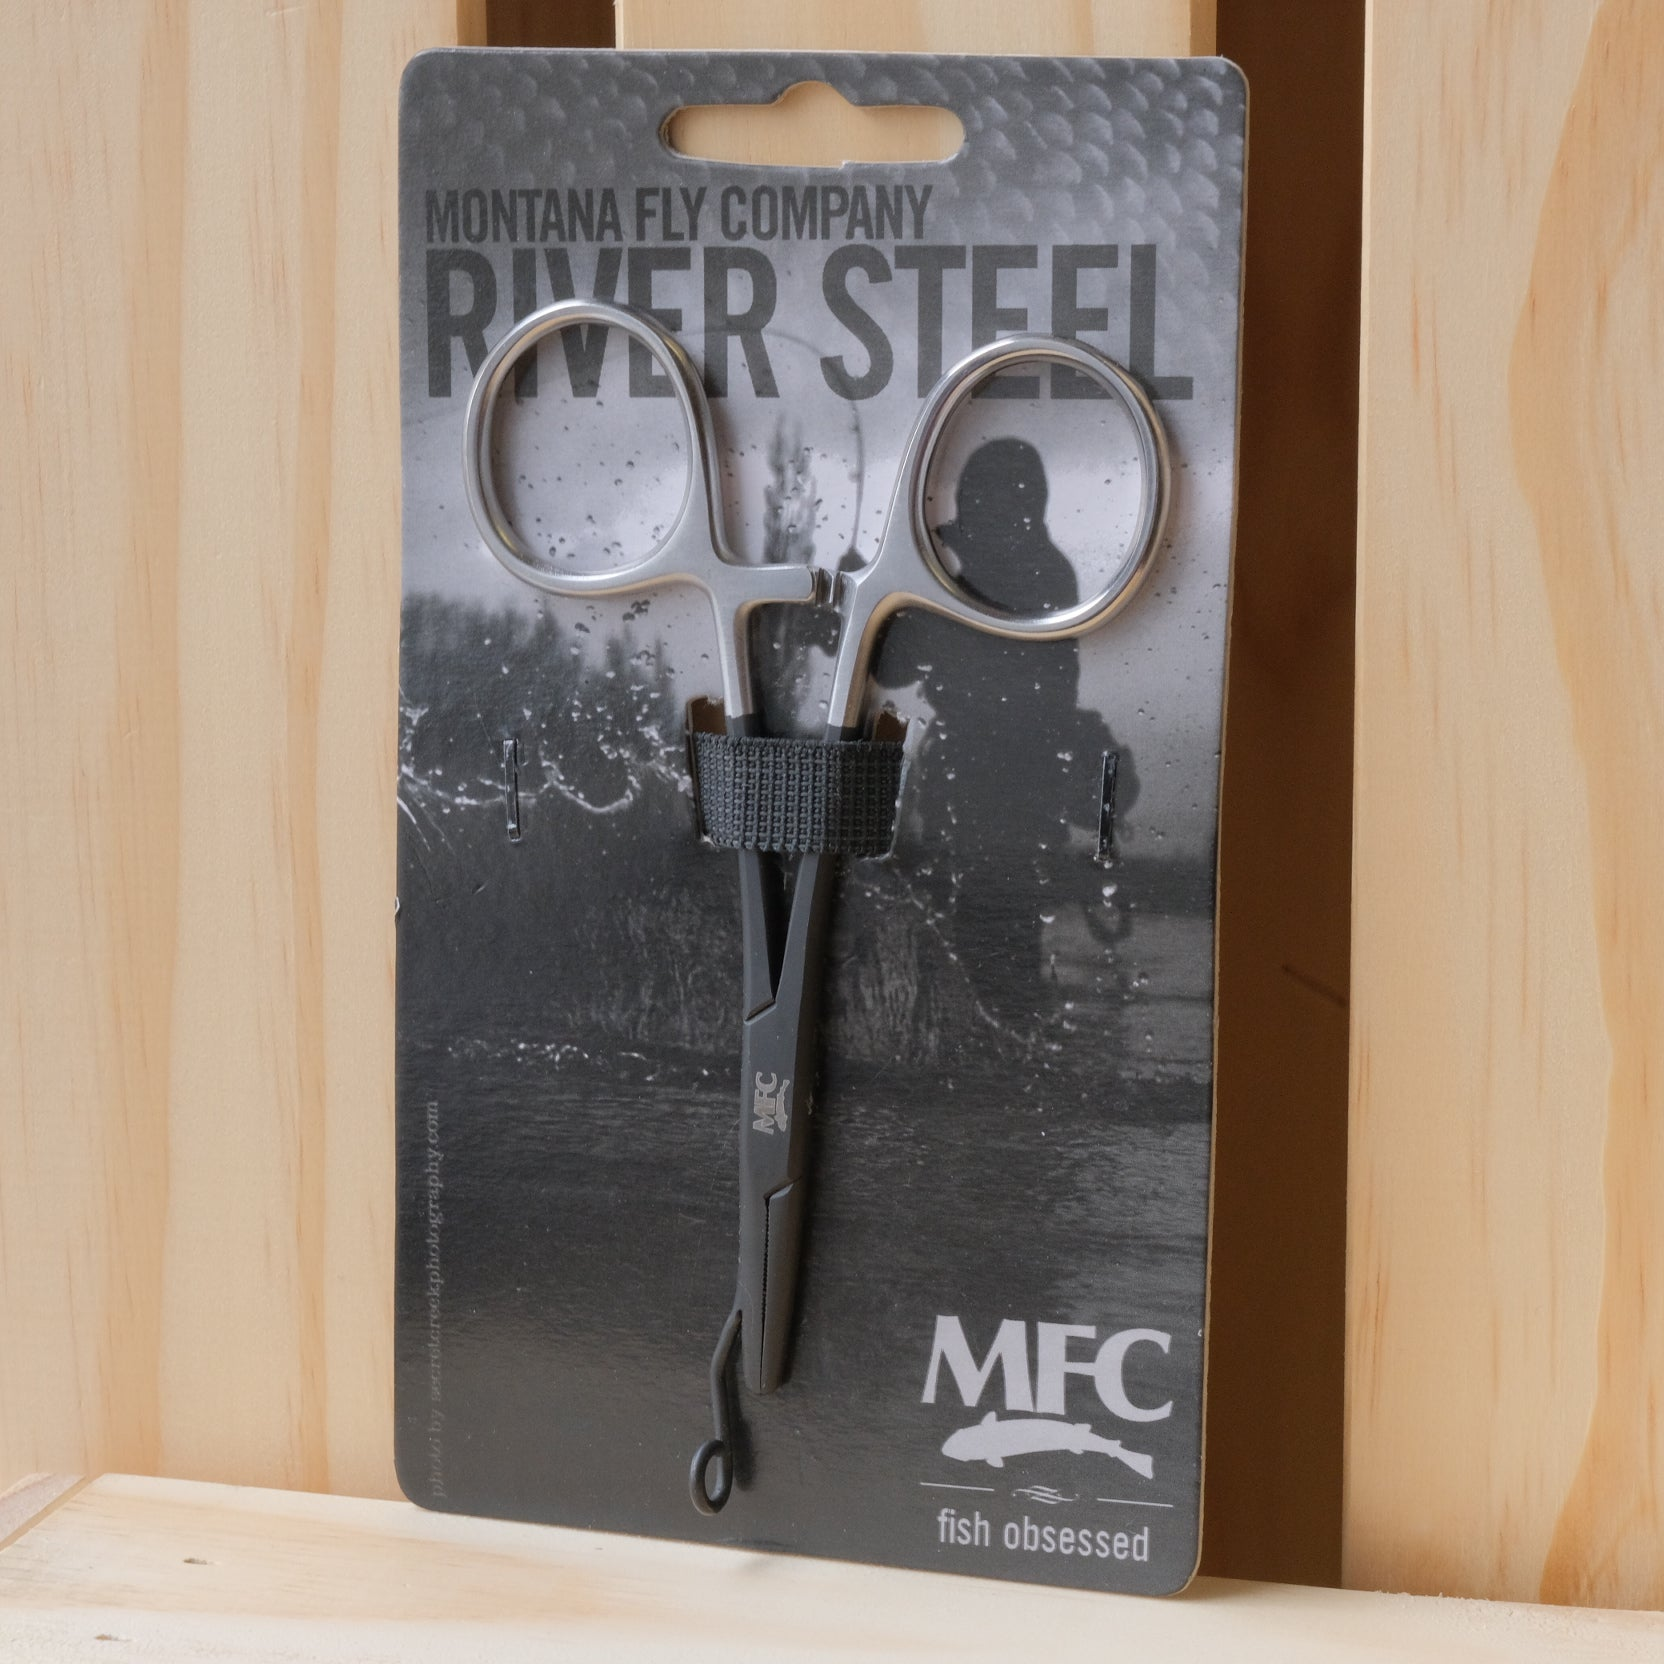 MFC River Steel - 5″ Straight Tip Forceps w/ Release